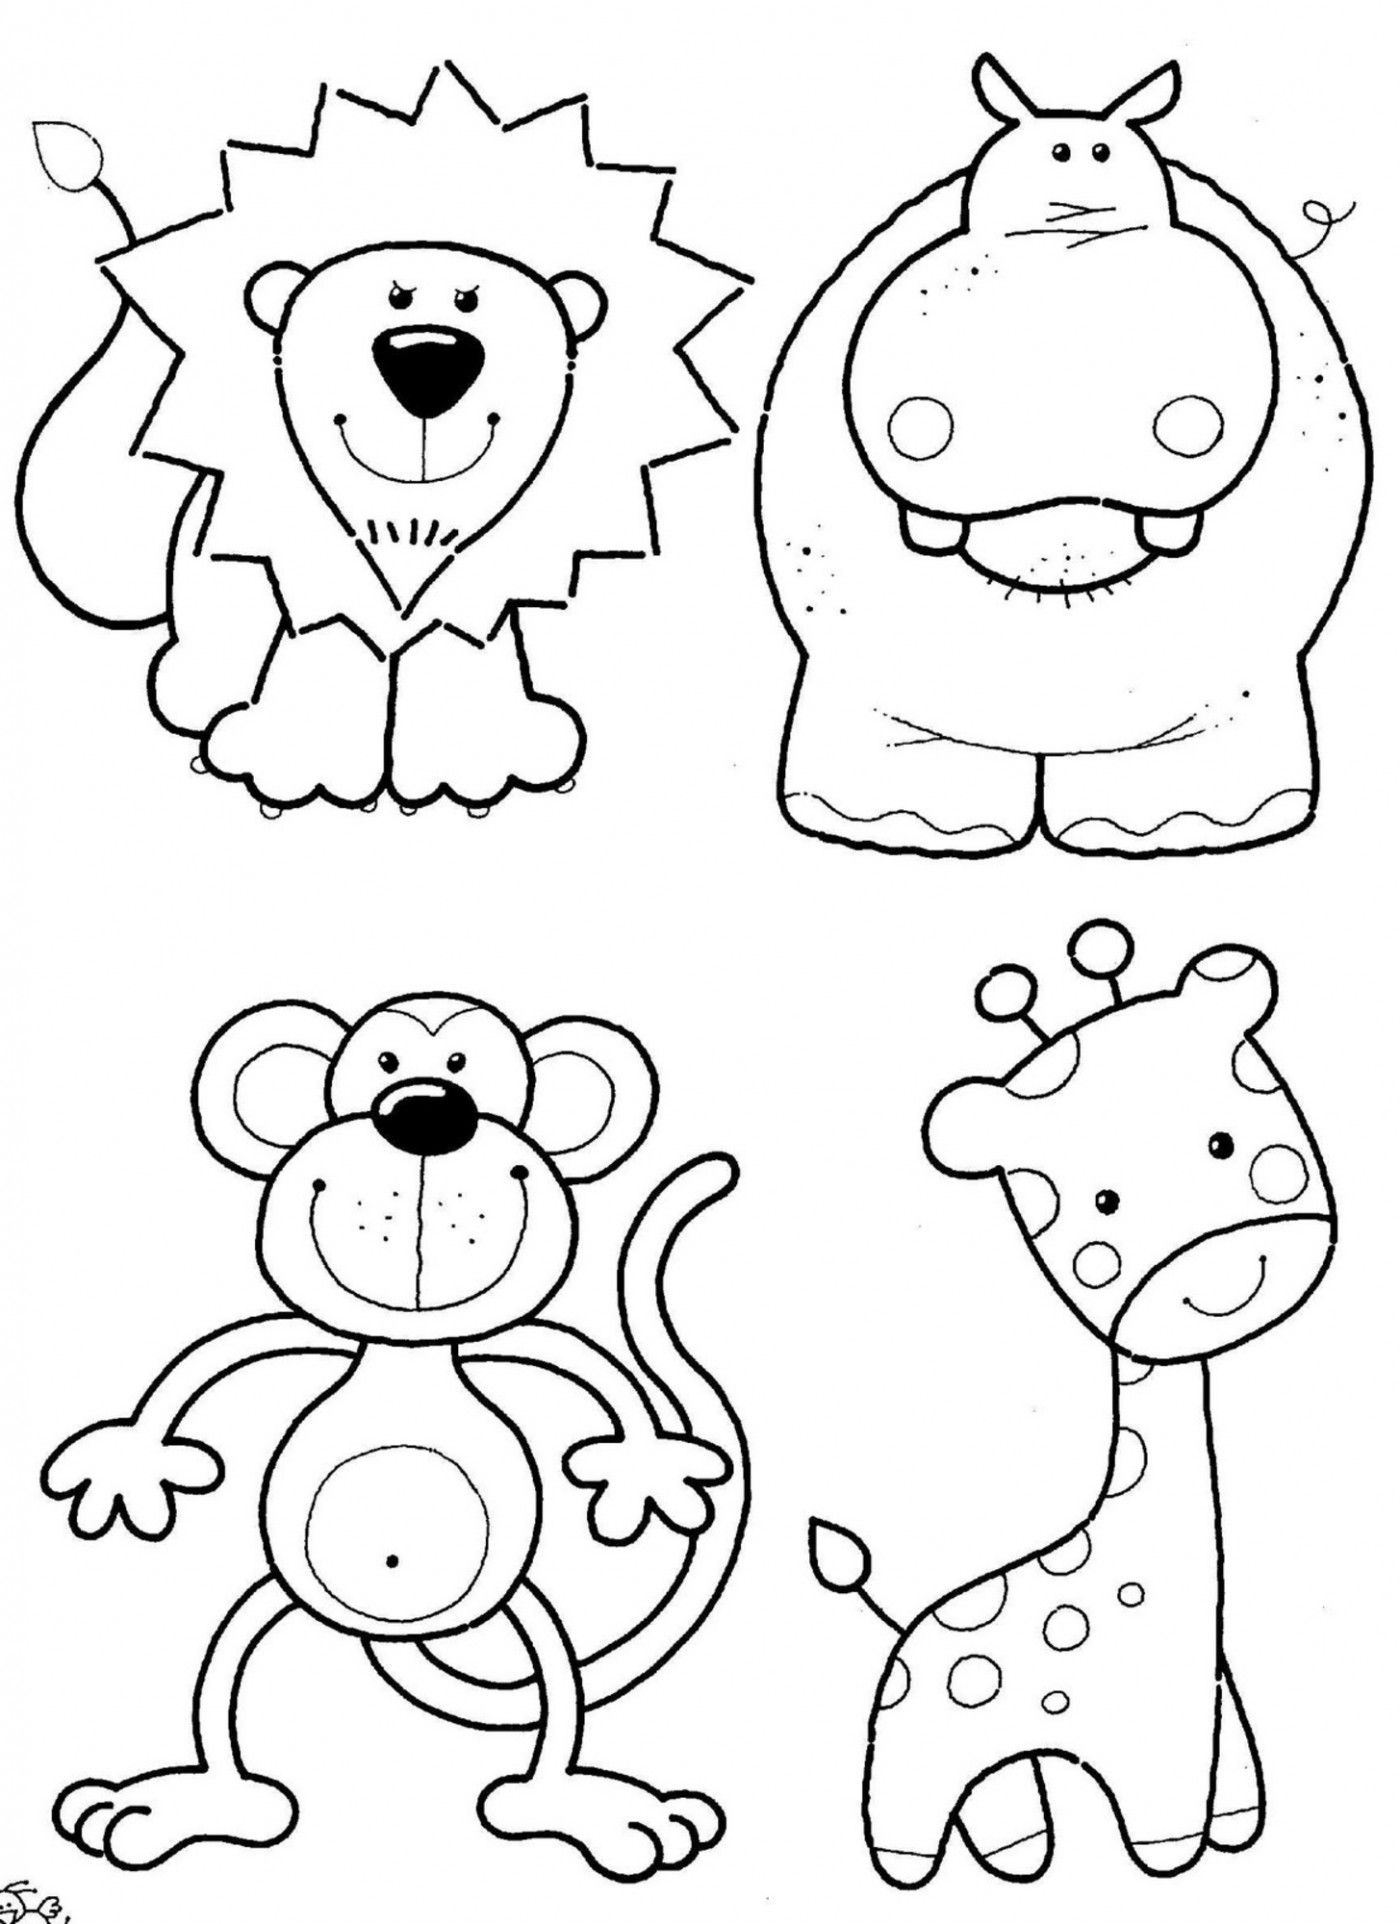 Safari Animal Coloring Pages : safari, animal, coloring, pages, Safari, Animal, Coloring, Images